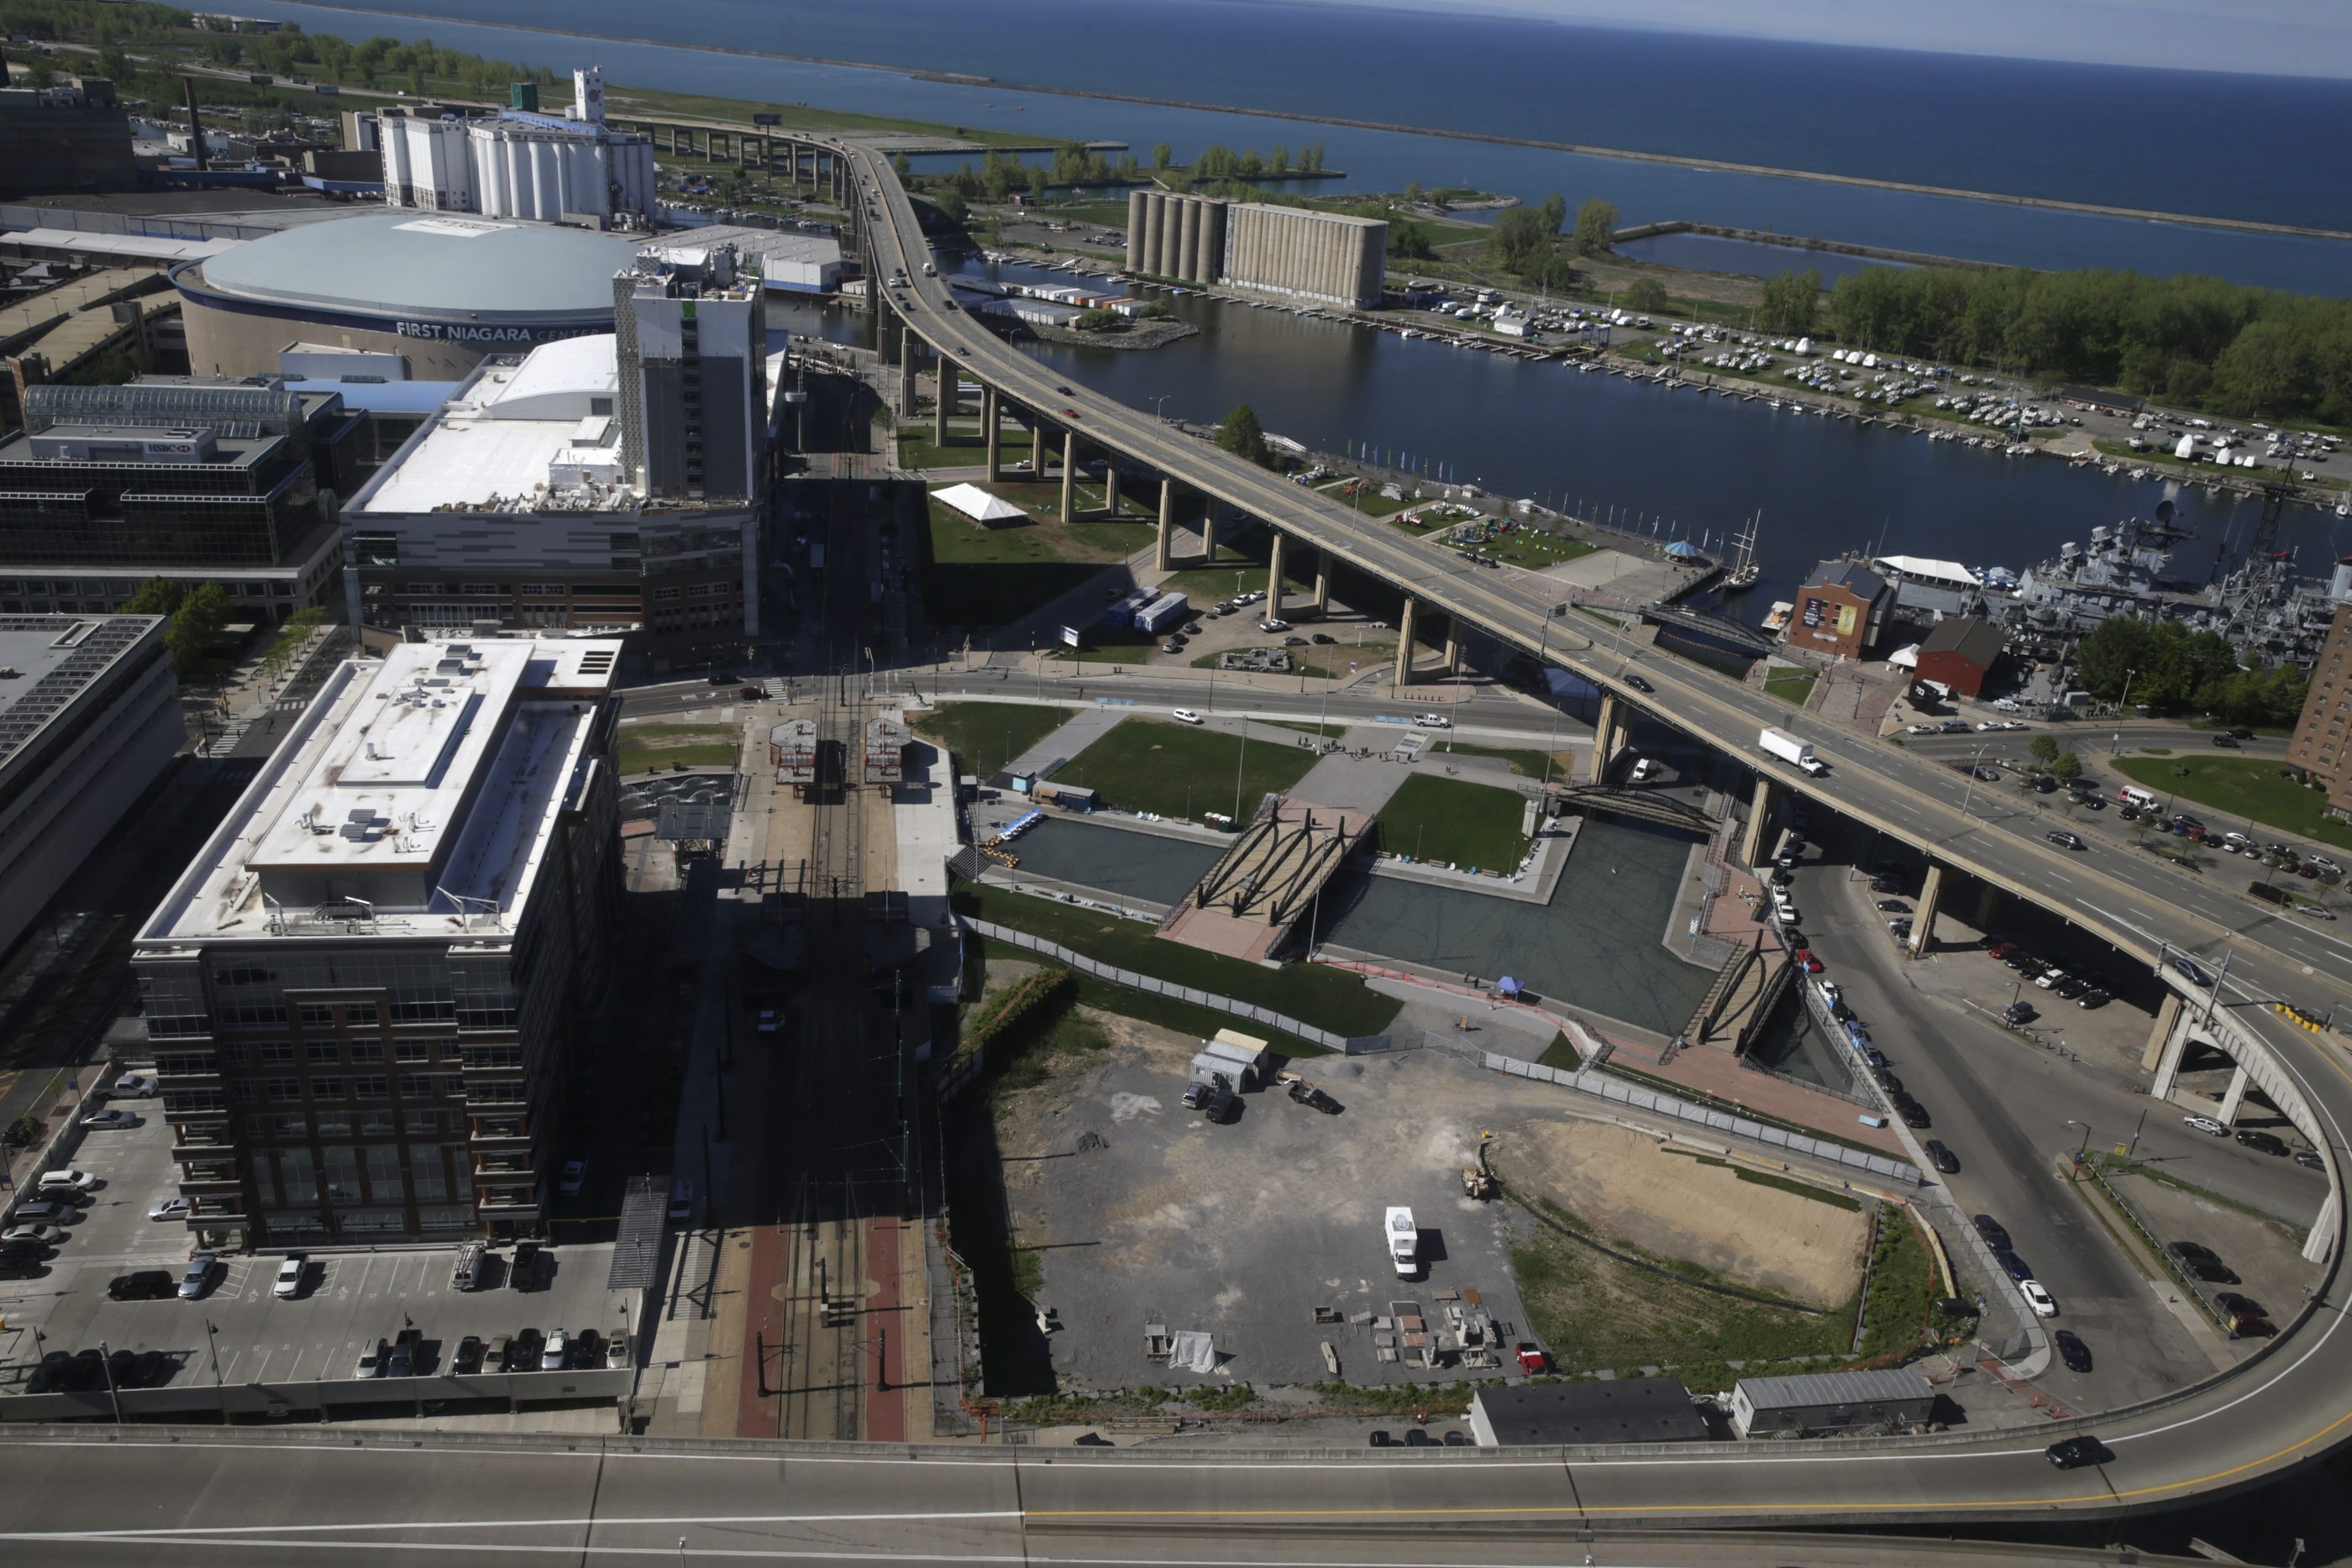 Erie Canal Harbor Development originally had called for developers to submit concepts for a 100,000-square-foot mixed-use complex, to be located on the parcel bounded by Main Street, Marine Drive and the historically aligned canals. (John Hickey/Buffalo News)